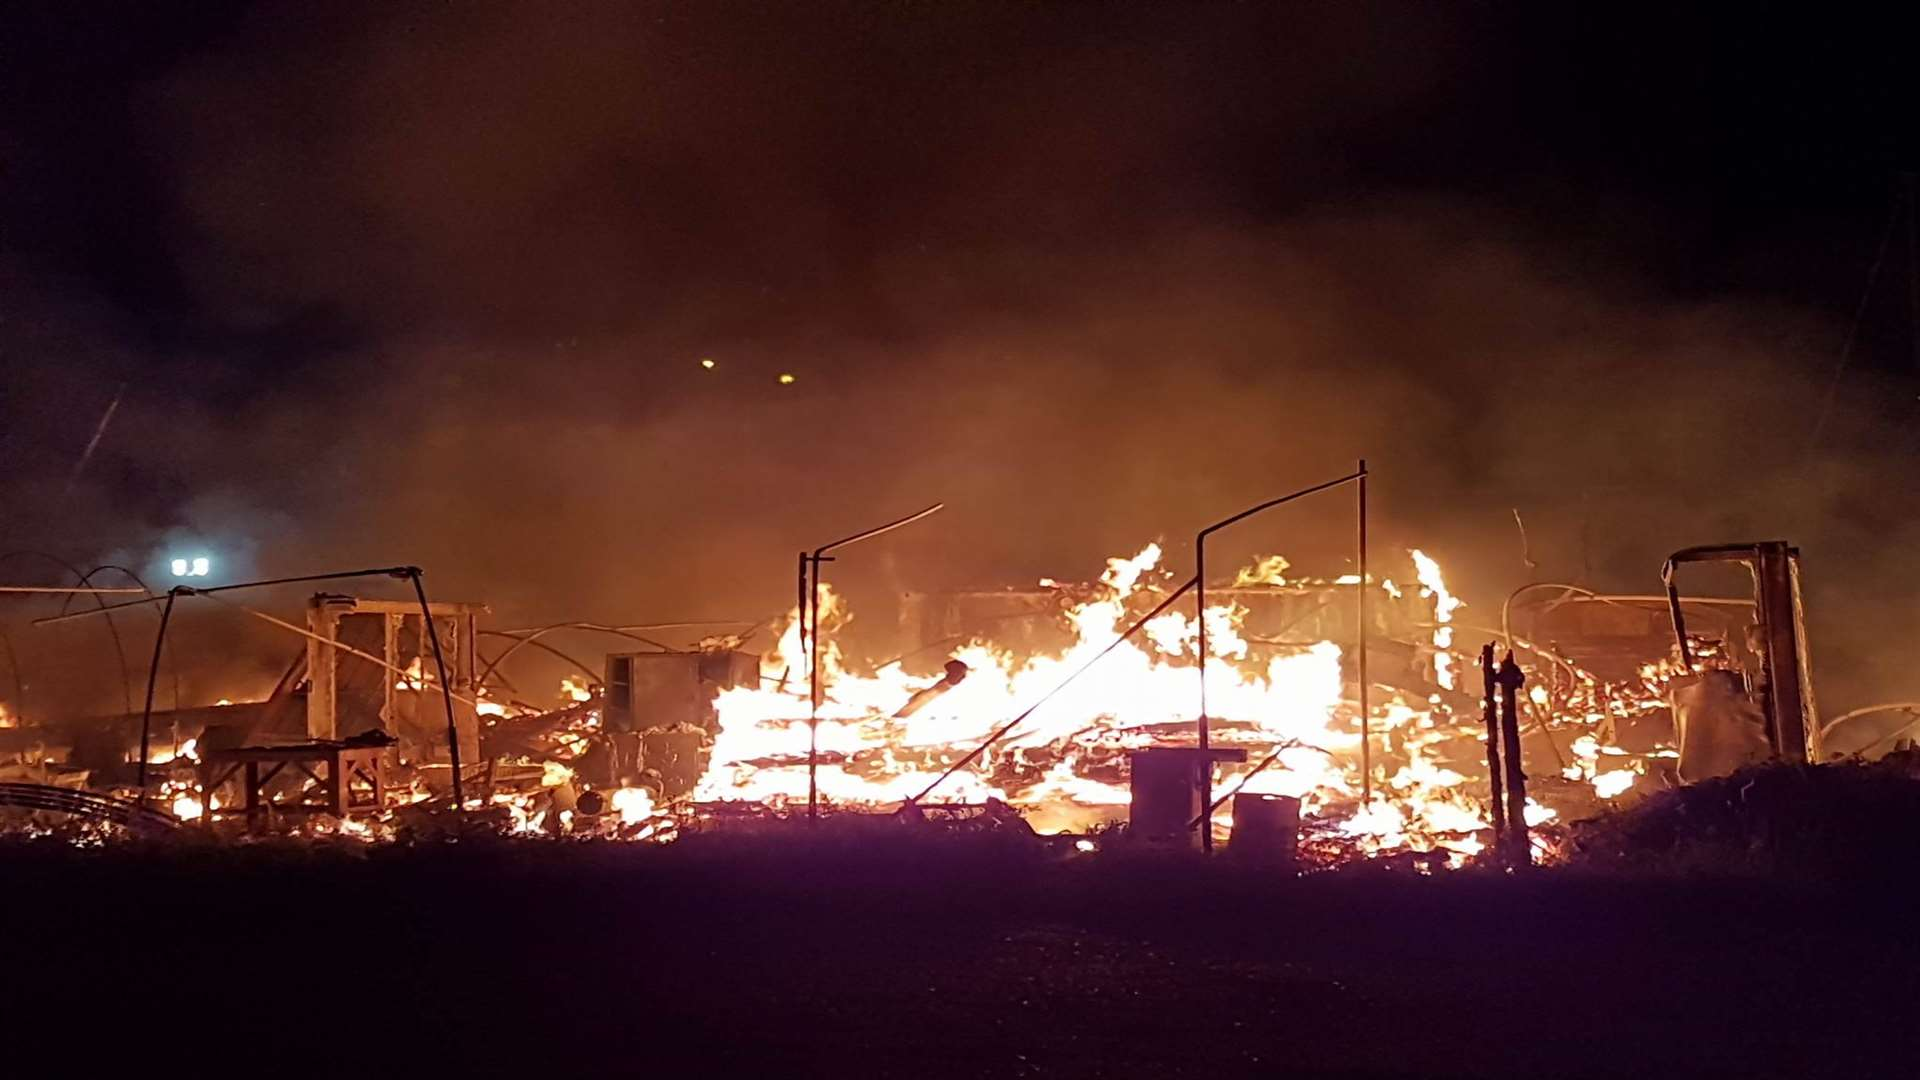 The fire rages at the boatyard. Picture: Dan Salter.